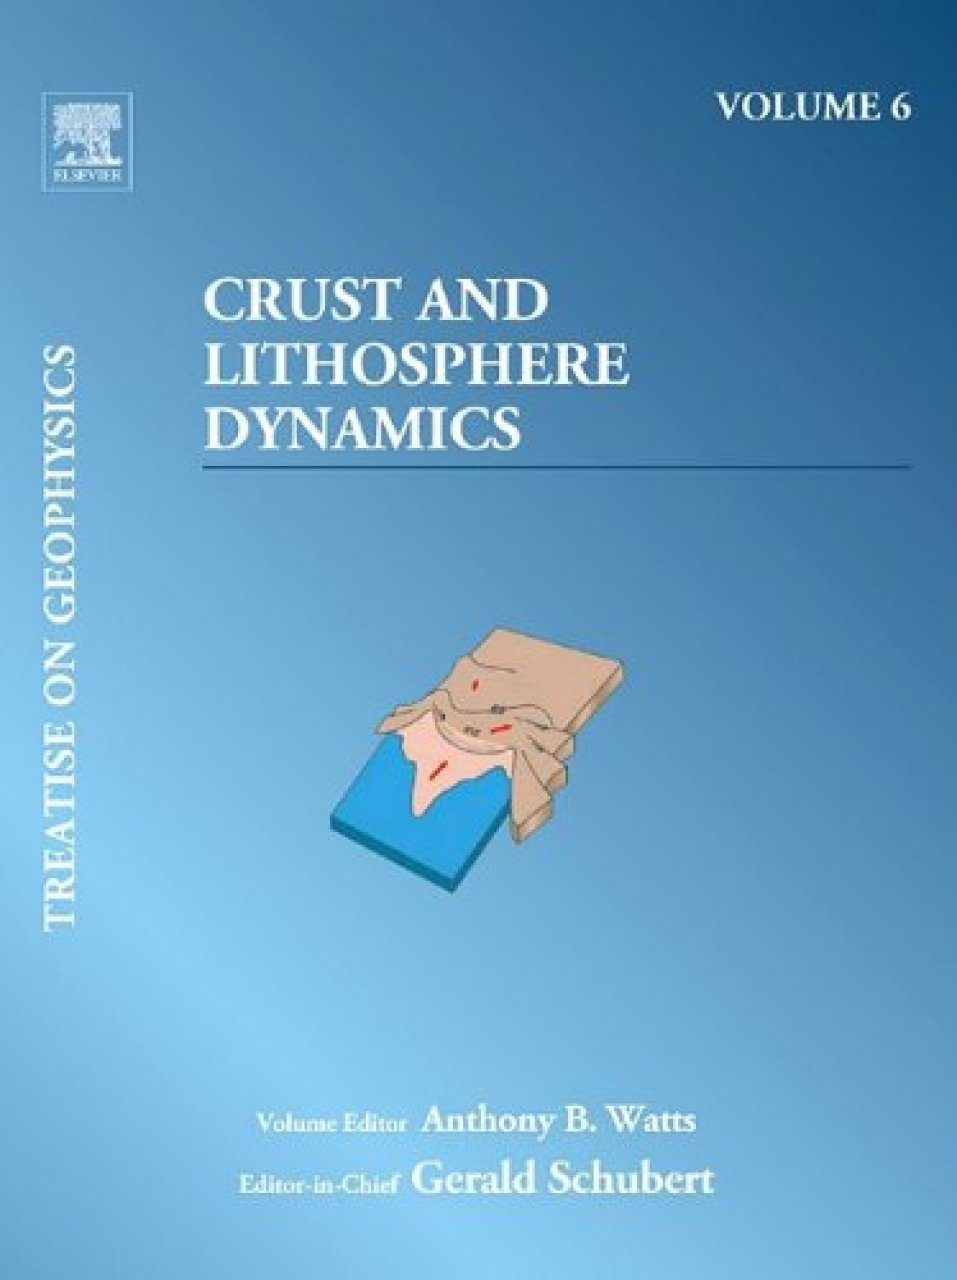 Crust and Lithosphere Dynamics